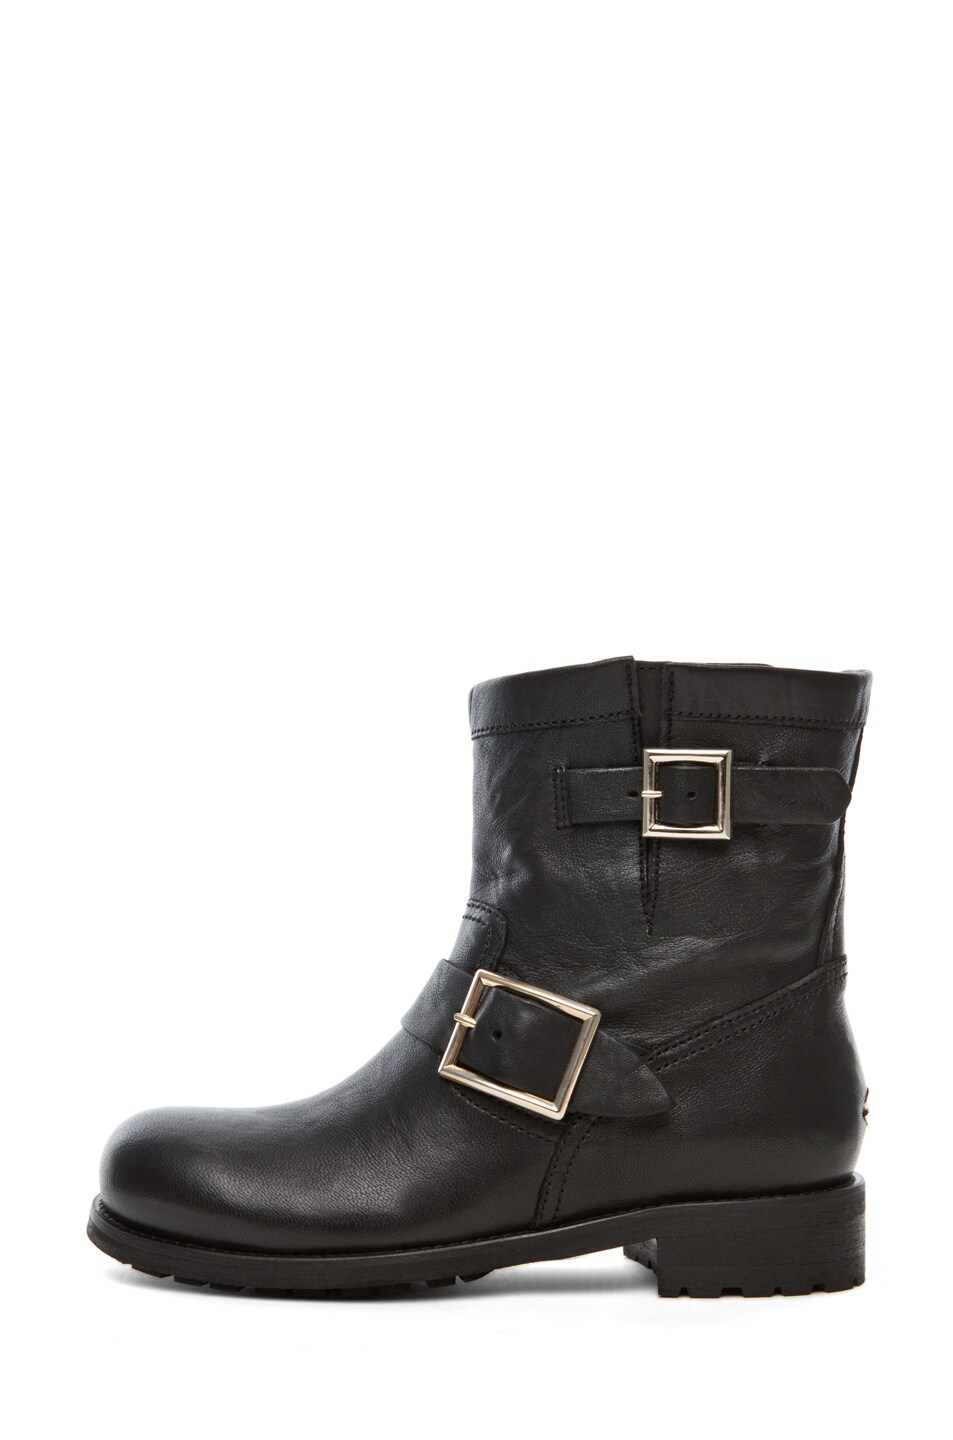 Image 1 of Jimmy Choo Youth Low Biker Boot in Black